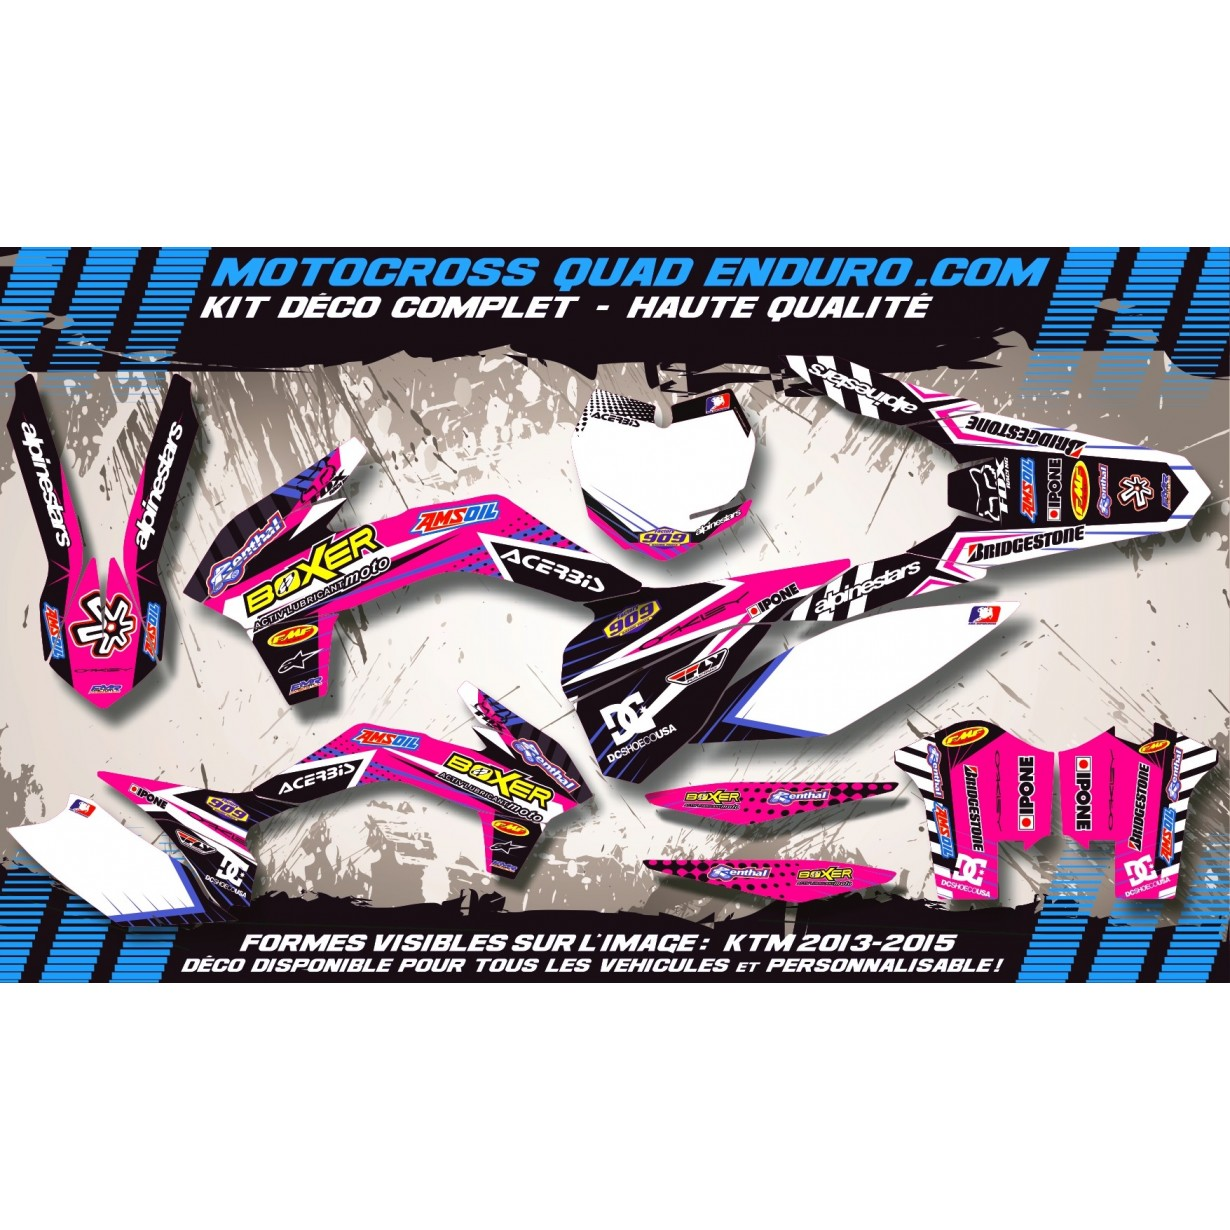 KIT DÉCO Perso EXC 450-525 03 BOXER MA1F